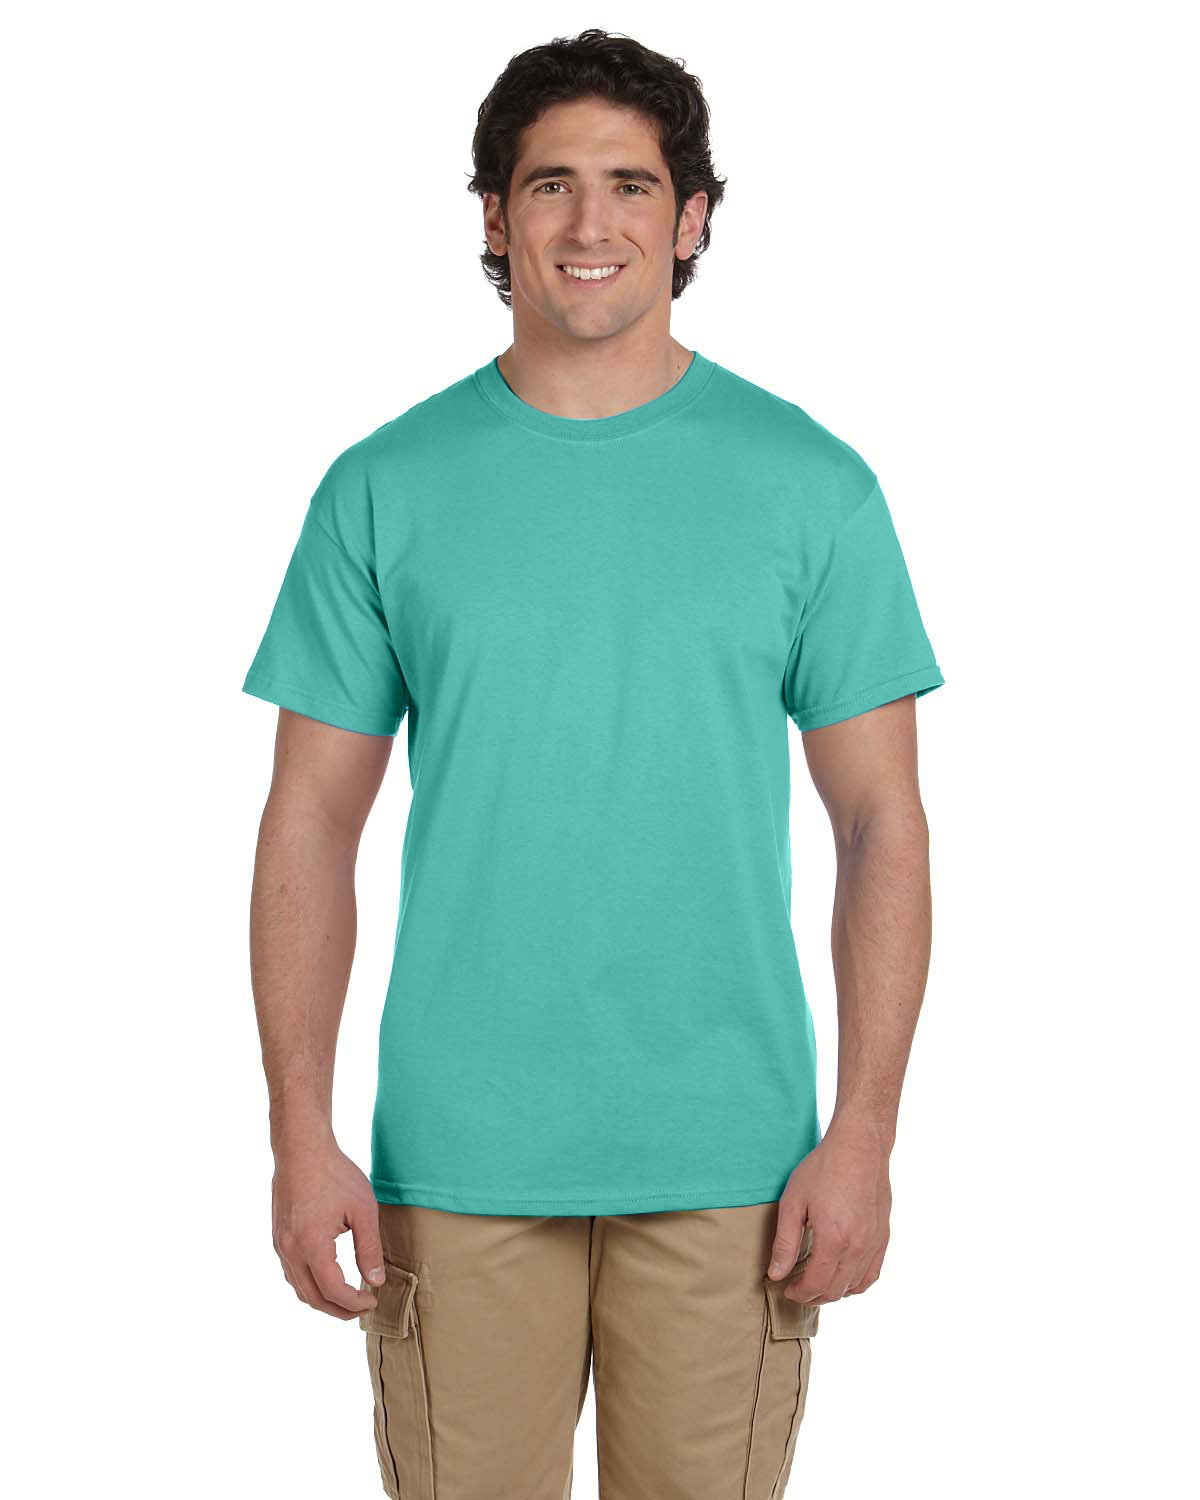 Fruit of the Loom Adult HD Cotton™ T-Shirt COOL MINT